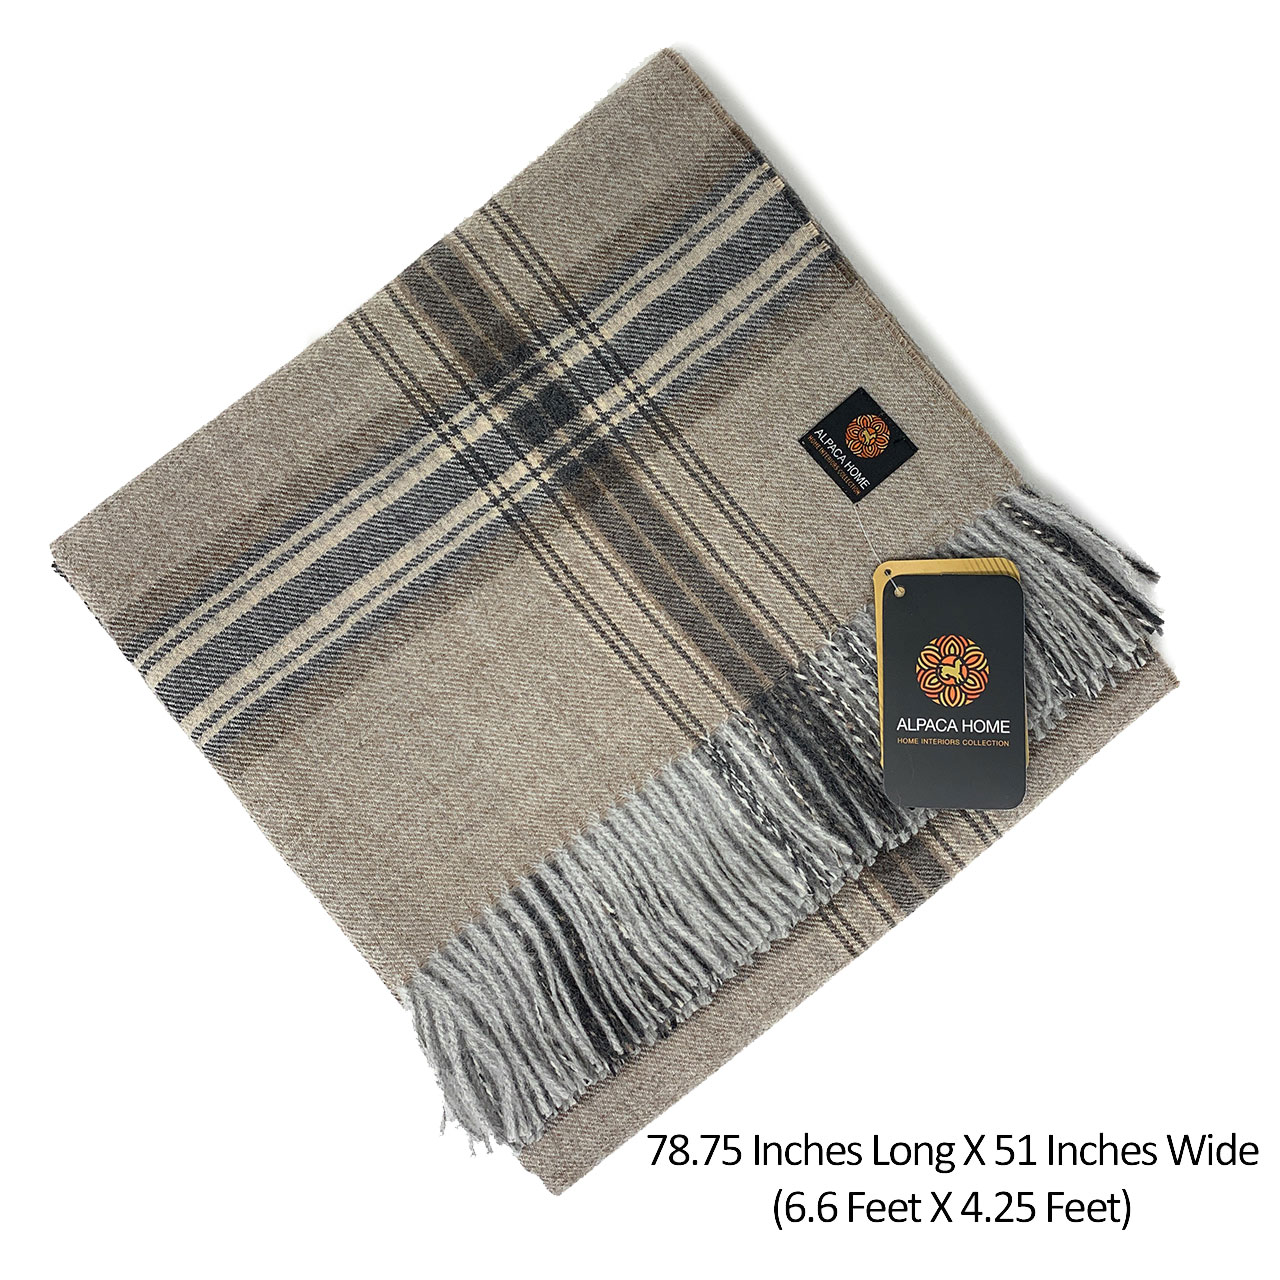 100% Baby Alpaca Wool Great Outdoors Plaid Throw Blanket Size